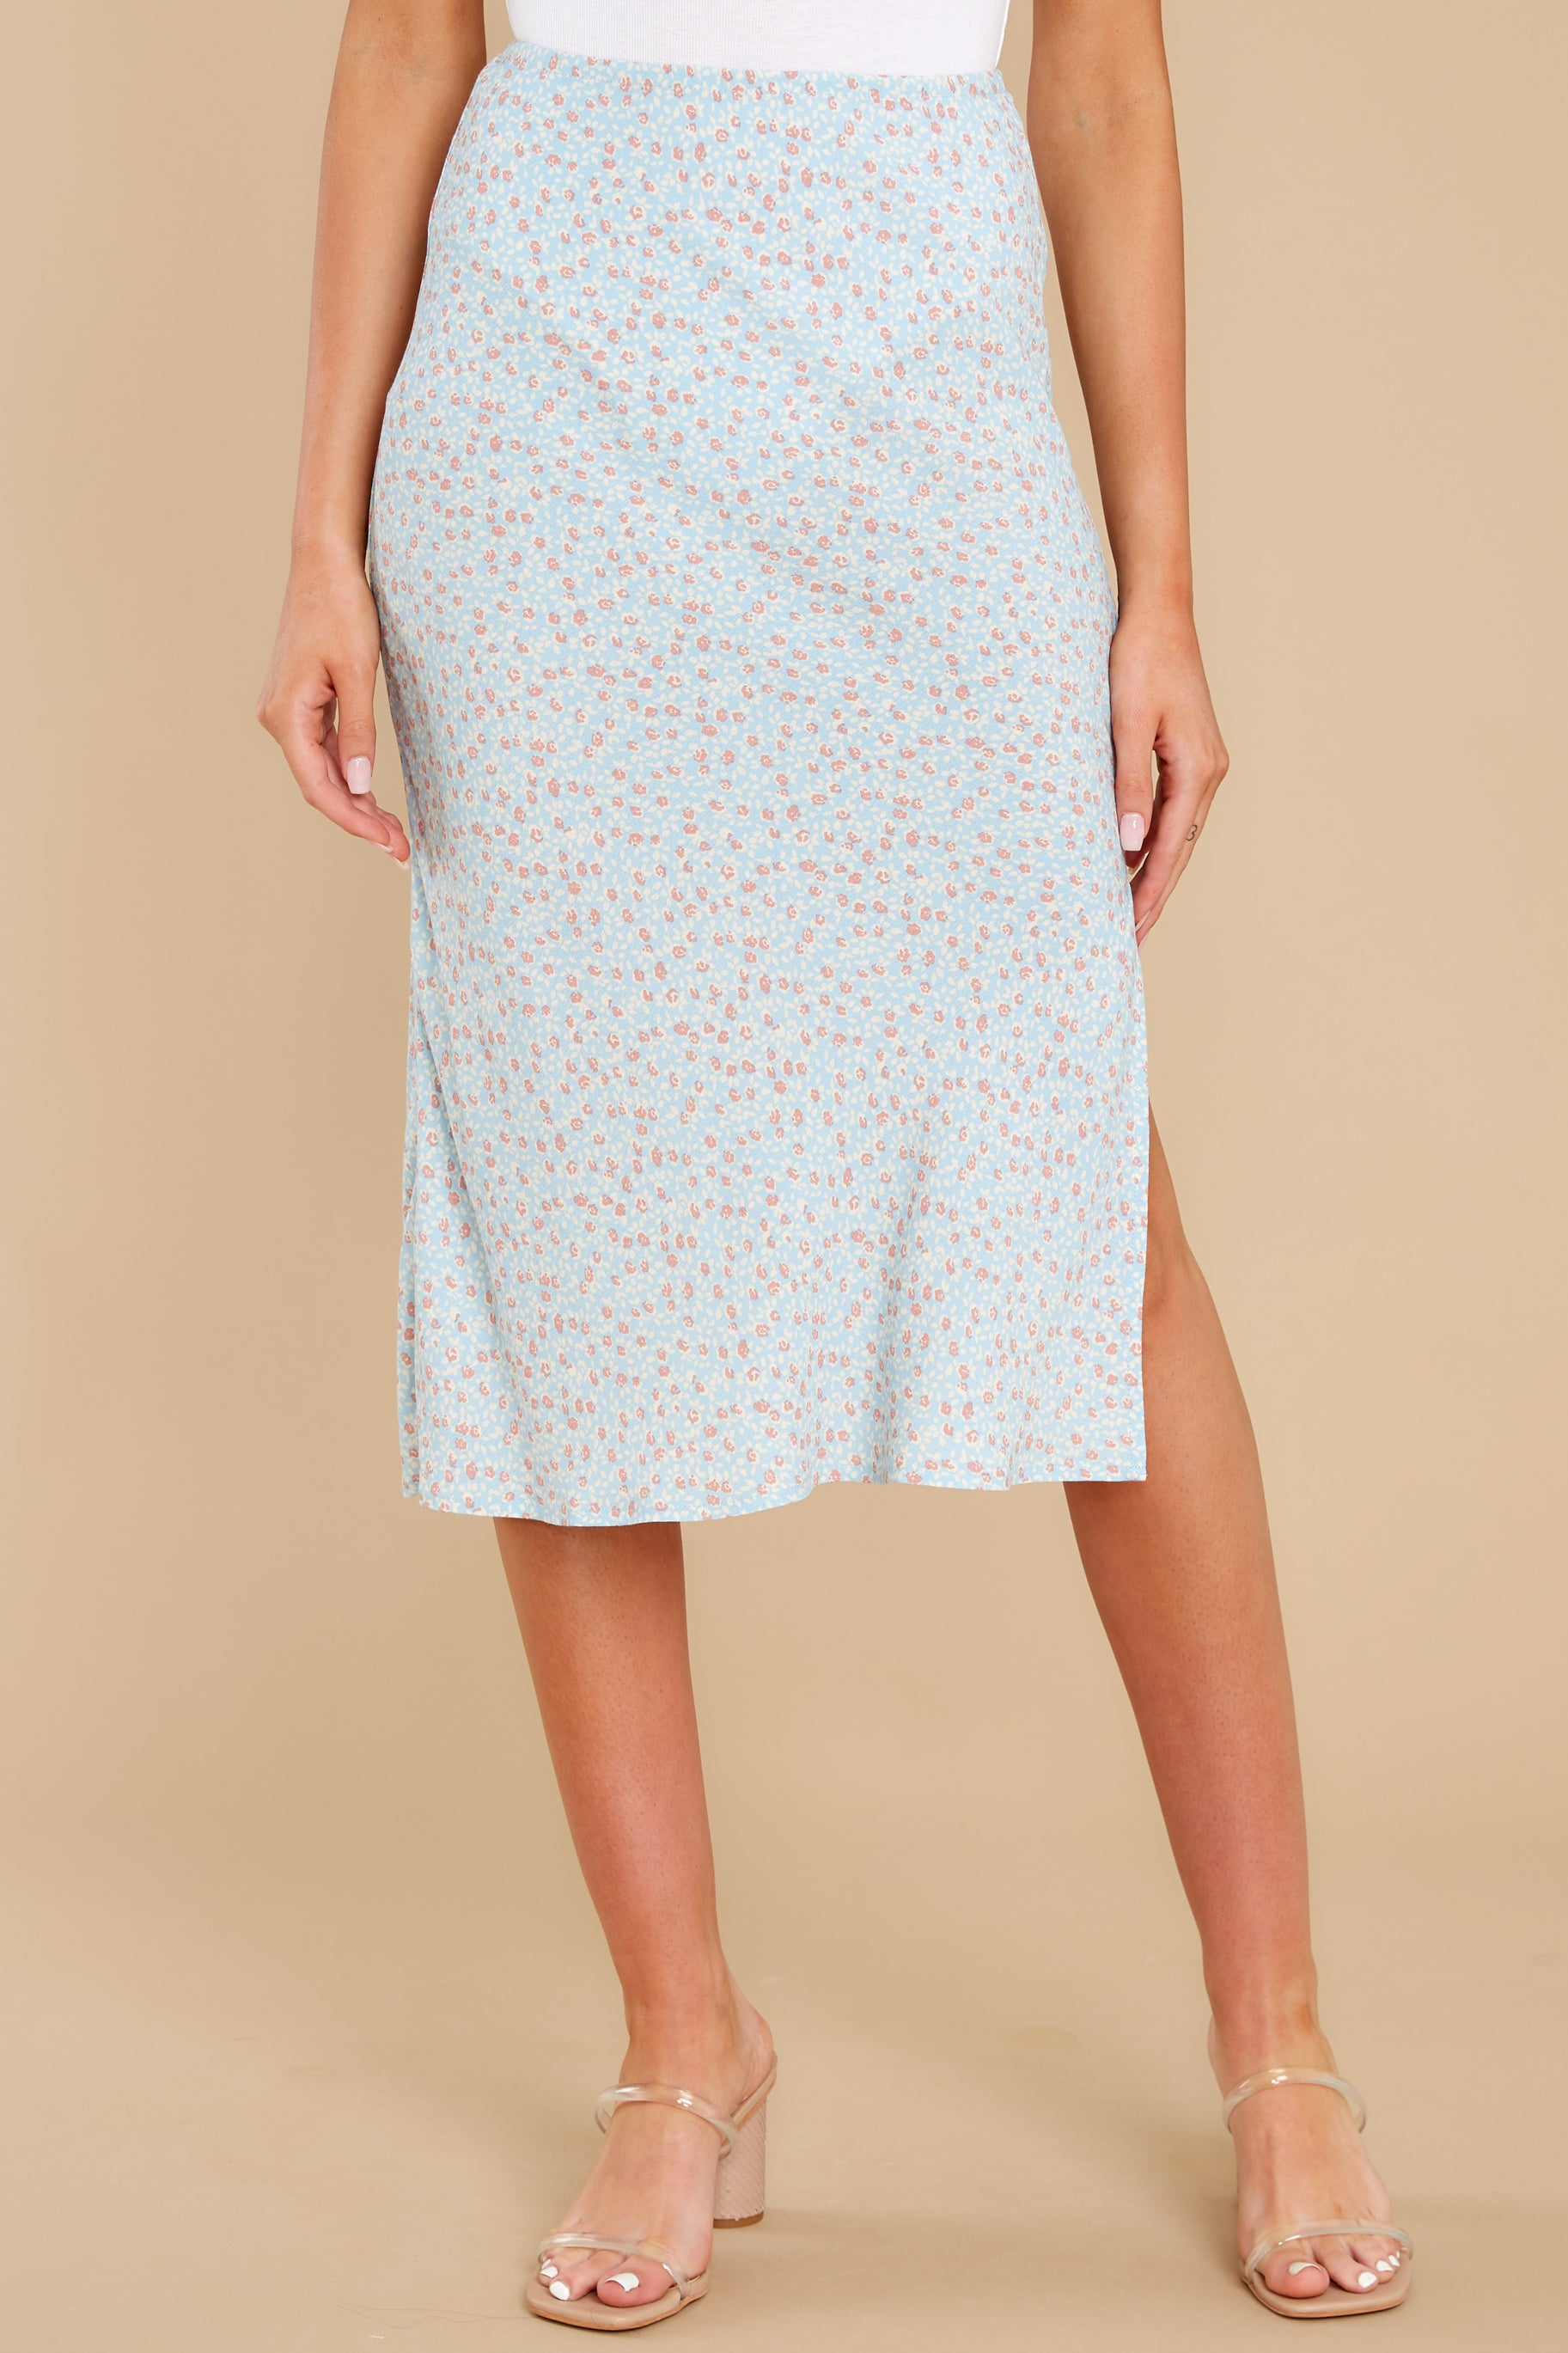 6 Adore It Sky Blue Floral Print Skirt at reddress.com